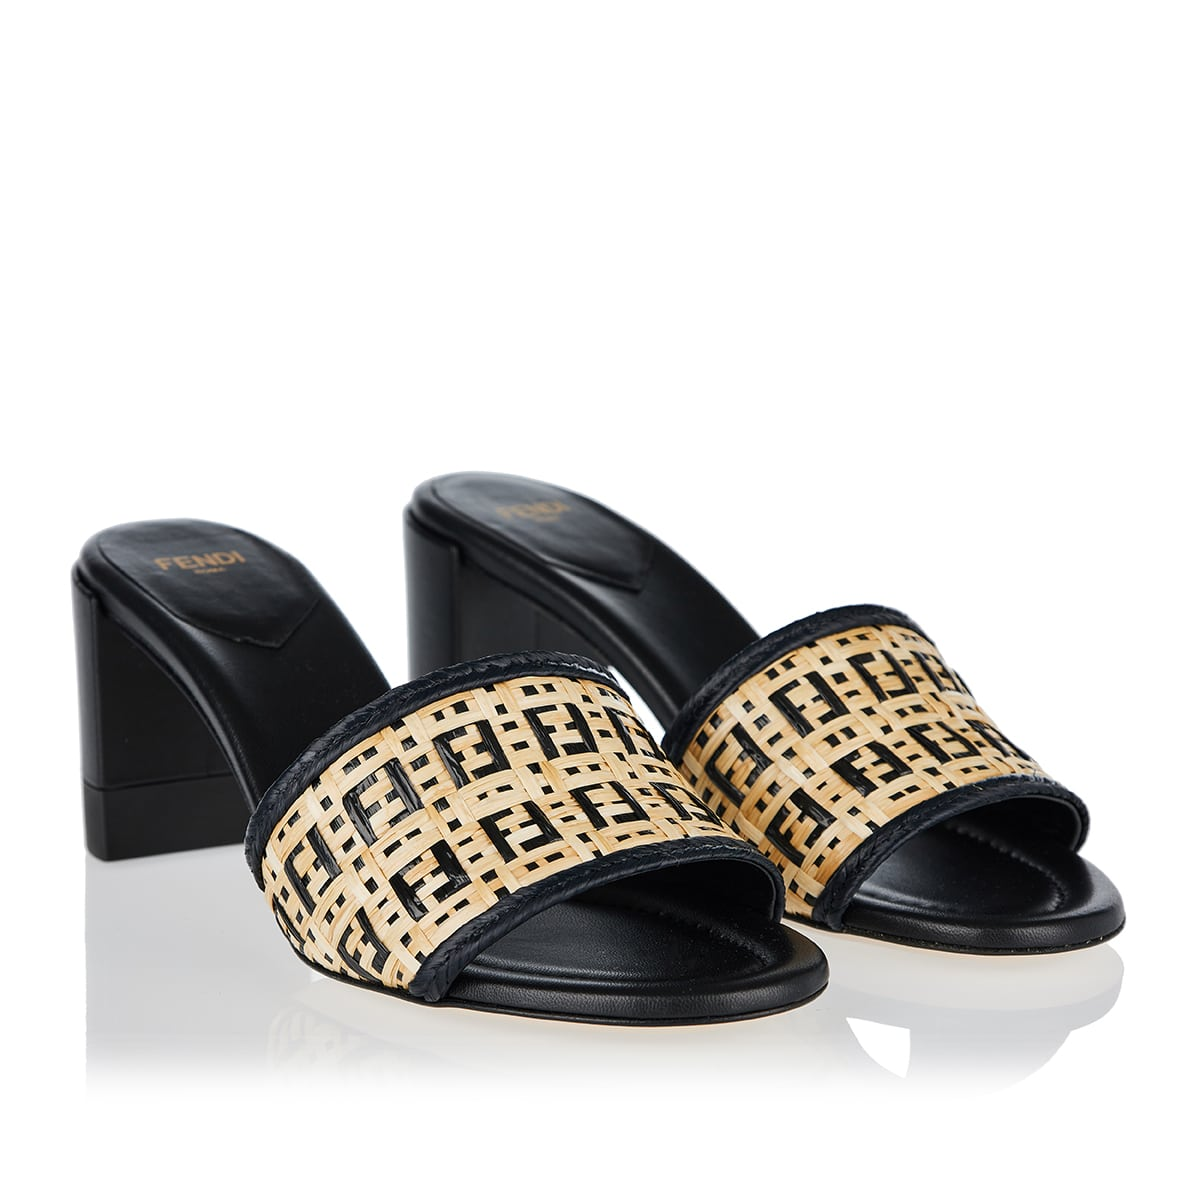 FF raffia and leather mules